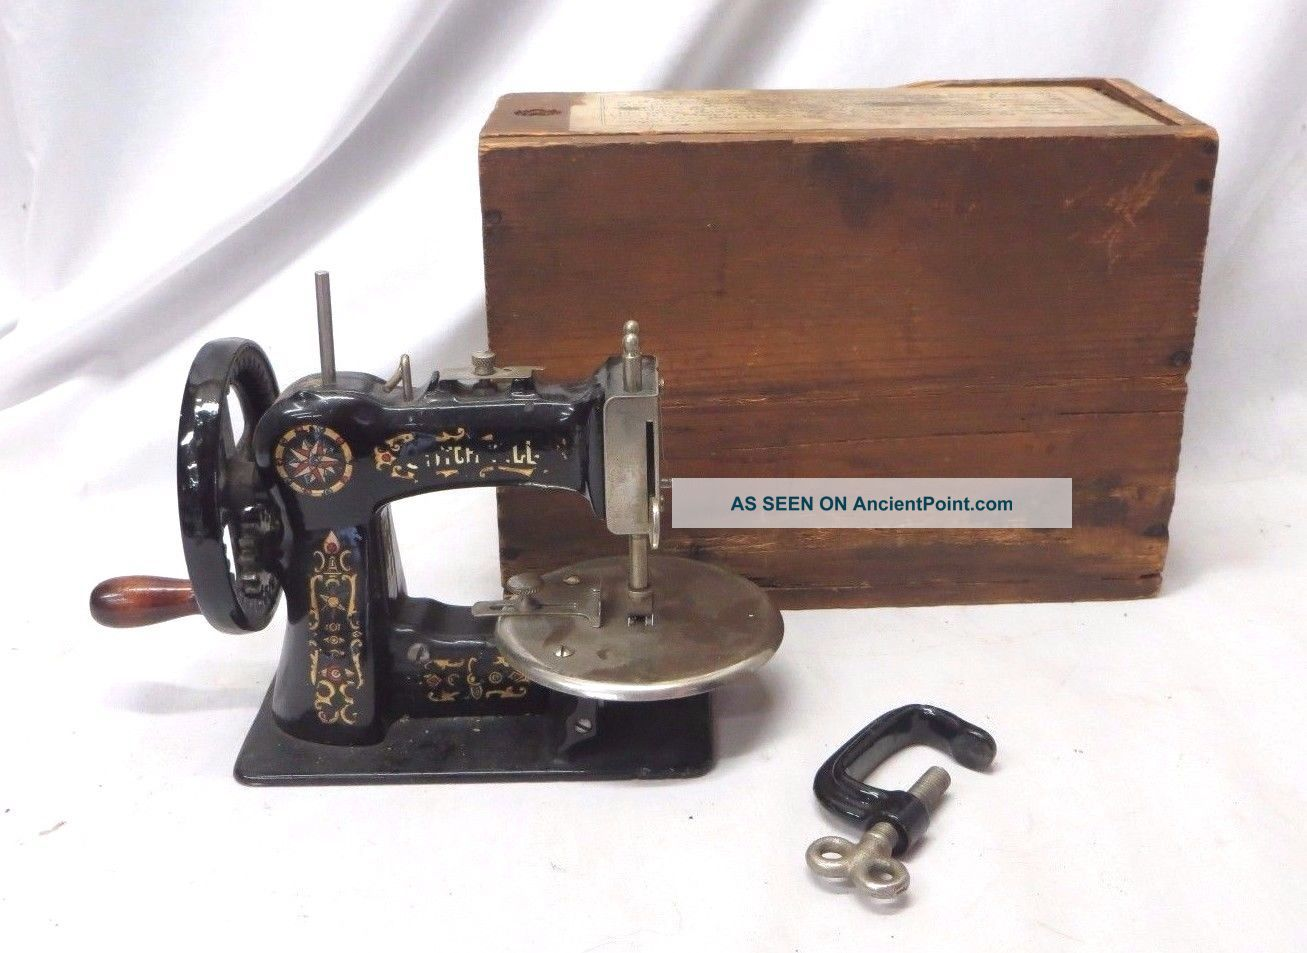 Antique 1920s Stitchwell Small Child ' S Toy Sewing Machine W/ Clamp & Box Sewing Machines photo